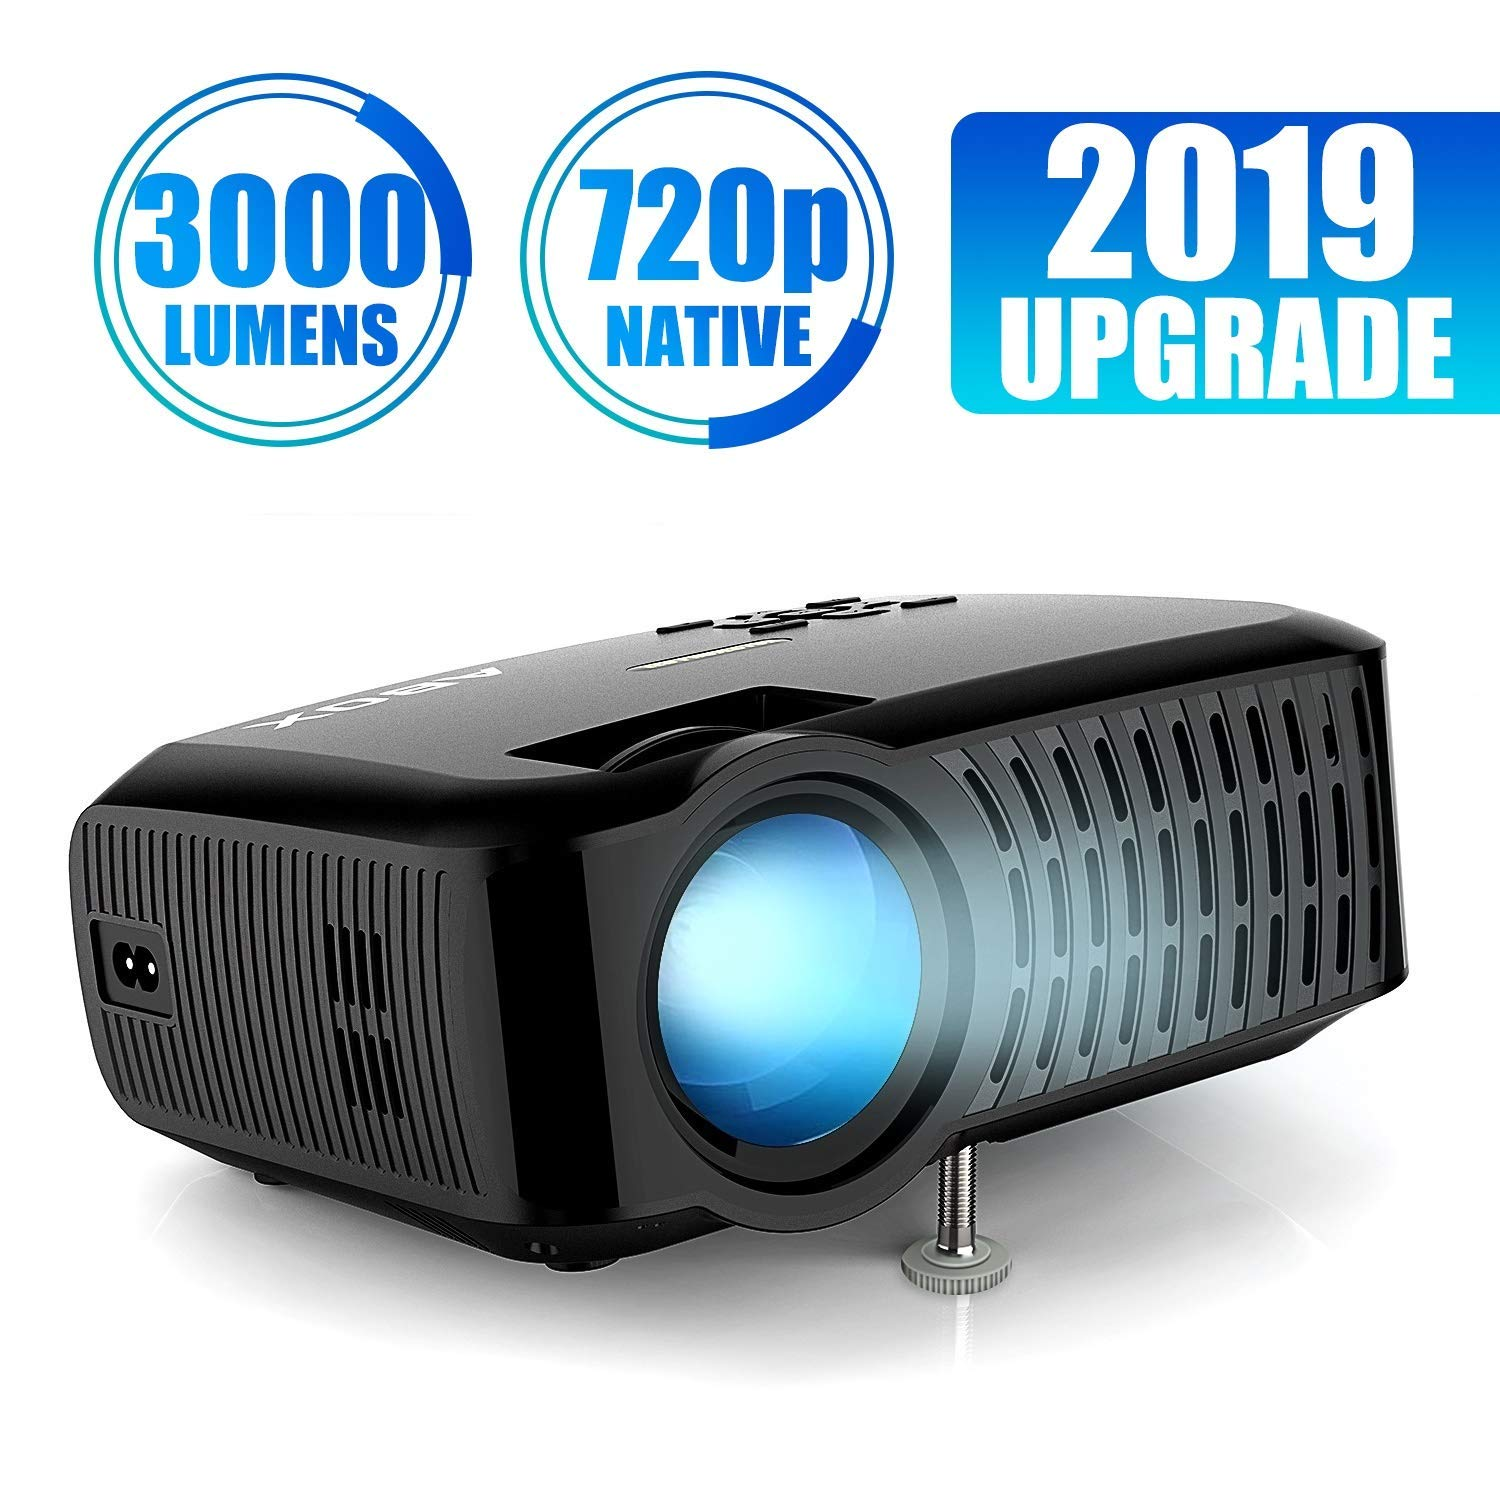 Projector, ABOX A2 LED Movie Video Projector with Full HD Native 720p, 100 ANSI Lumen, 180'' Big Screen, Hifi Speaker, Support 1080p with HDMI/USB/SD Card/VGA/AV Ports For Home Theater/Laptop/TV/Phones by GooBang Doo